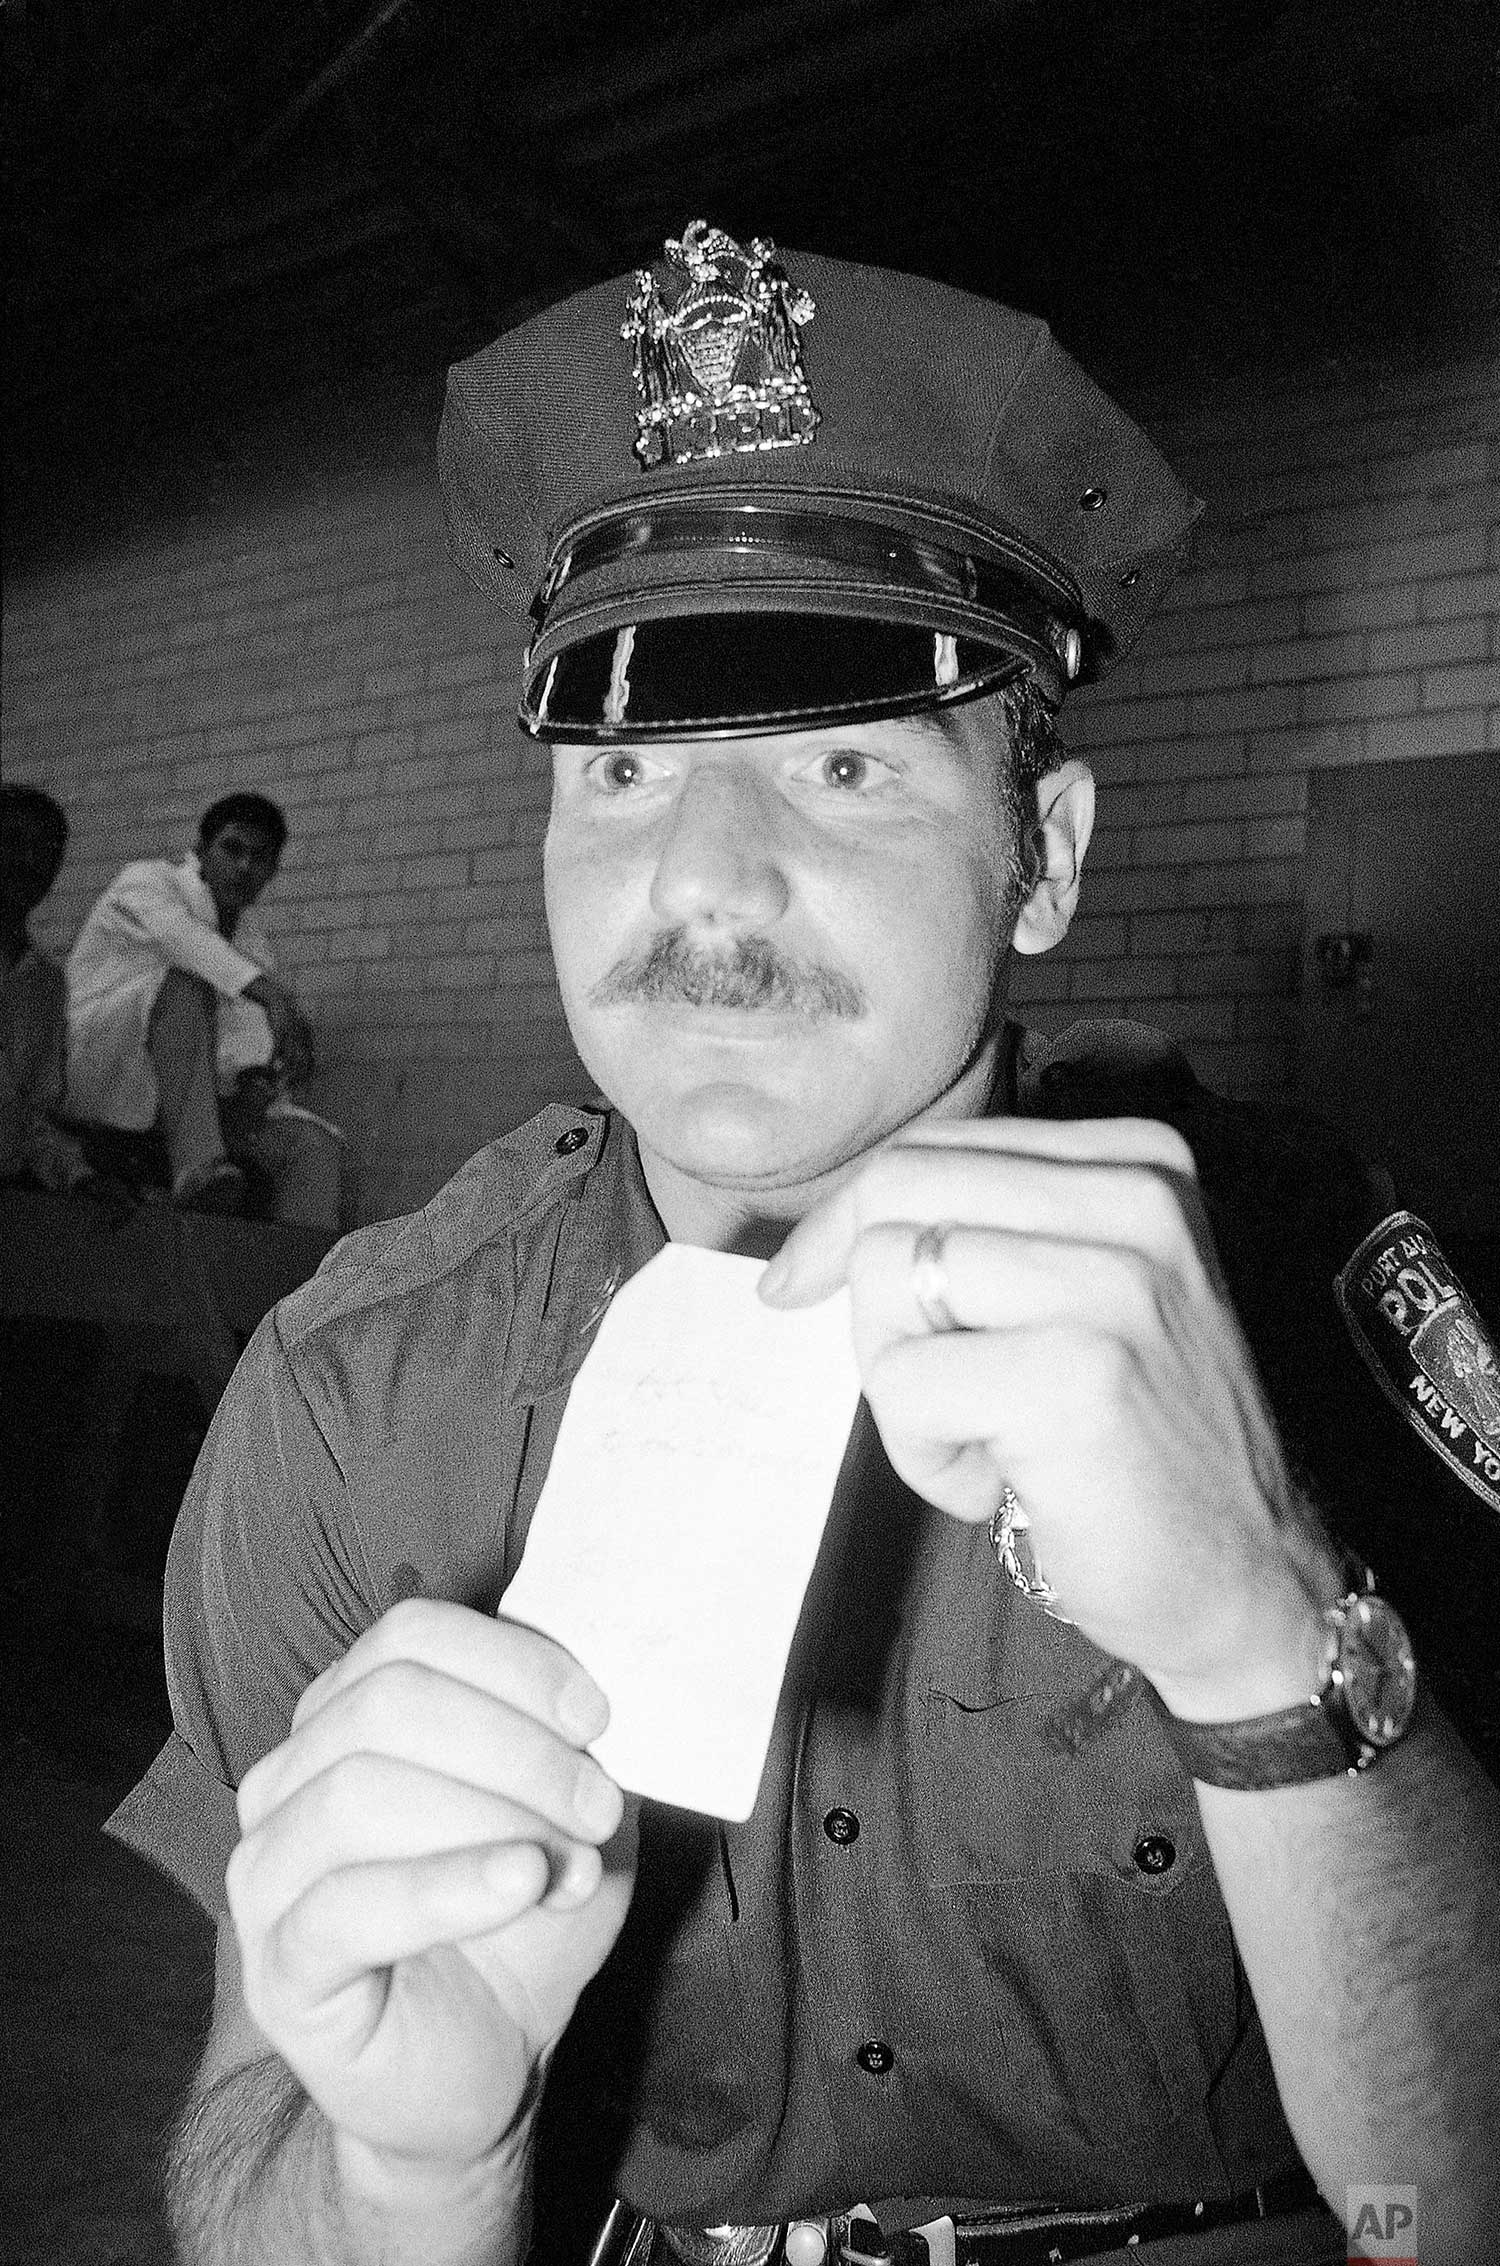 Officer Glenn Kildare with an autograph he received from George Willig in New York, May 26, 1977. (AP Photo/Carlos Rene Perez)